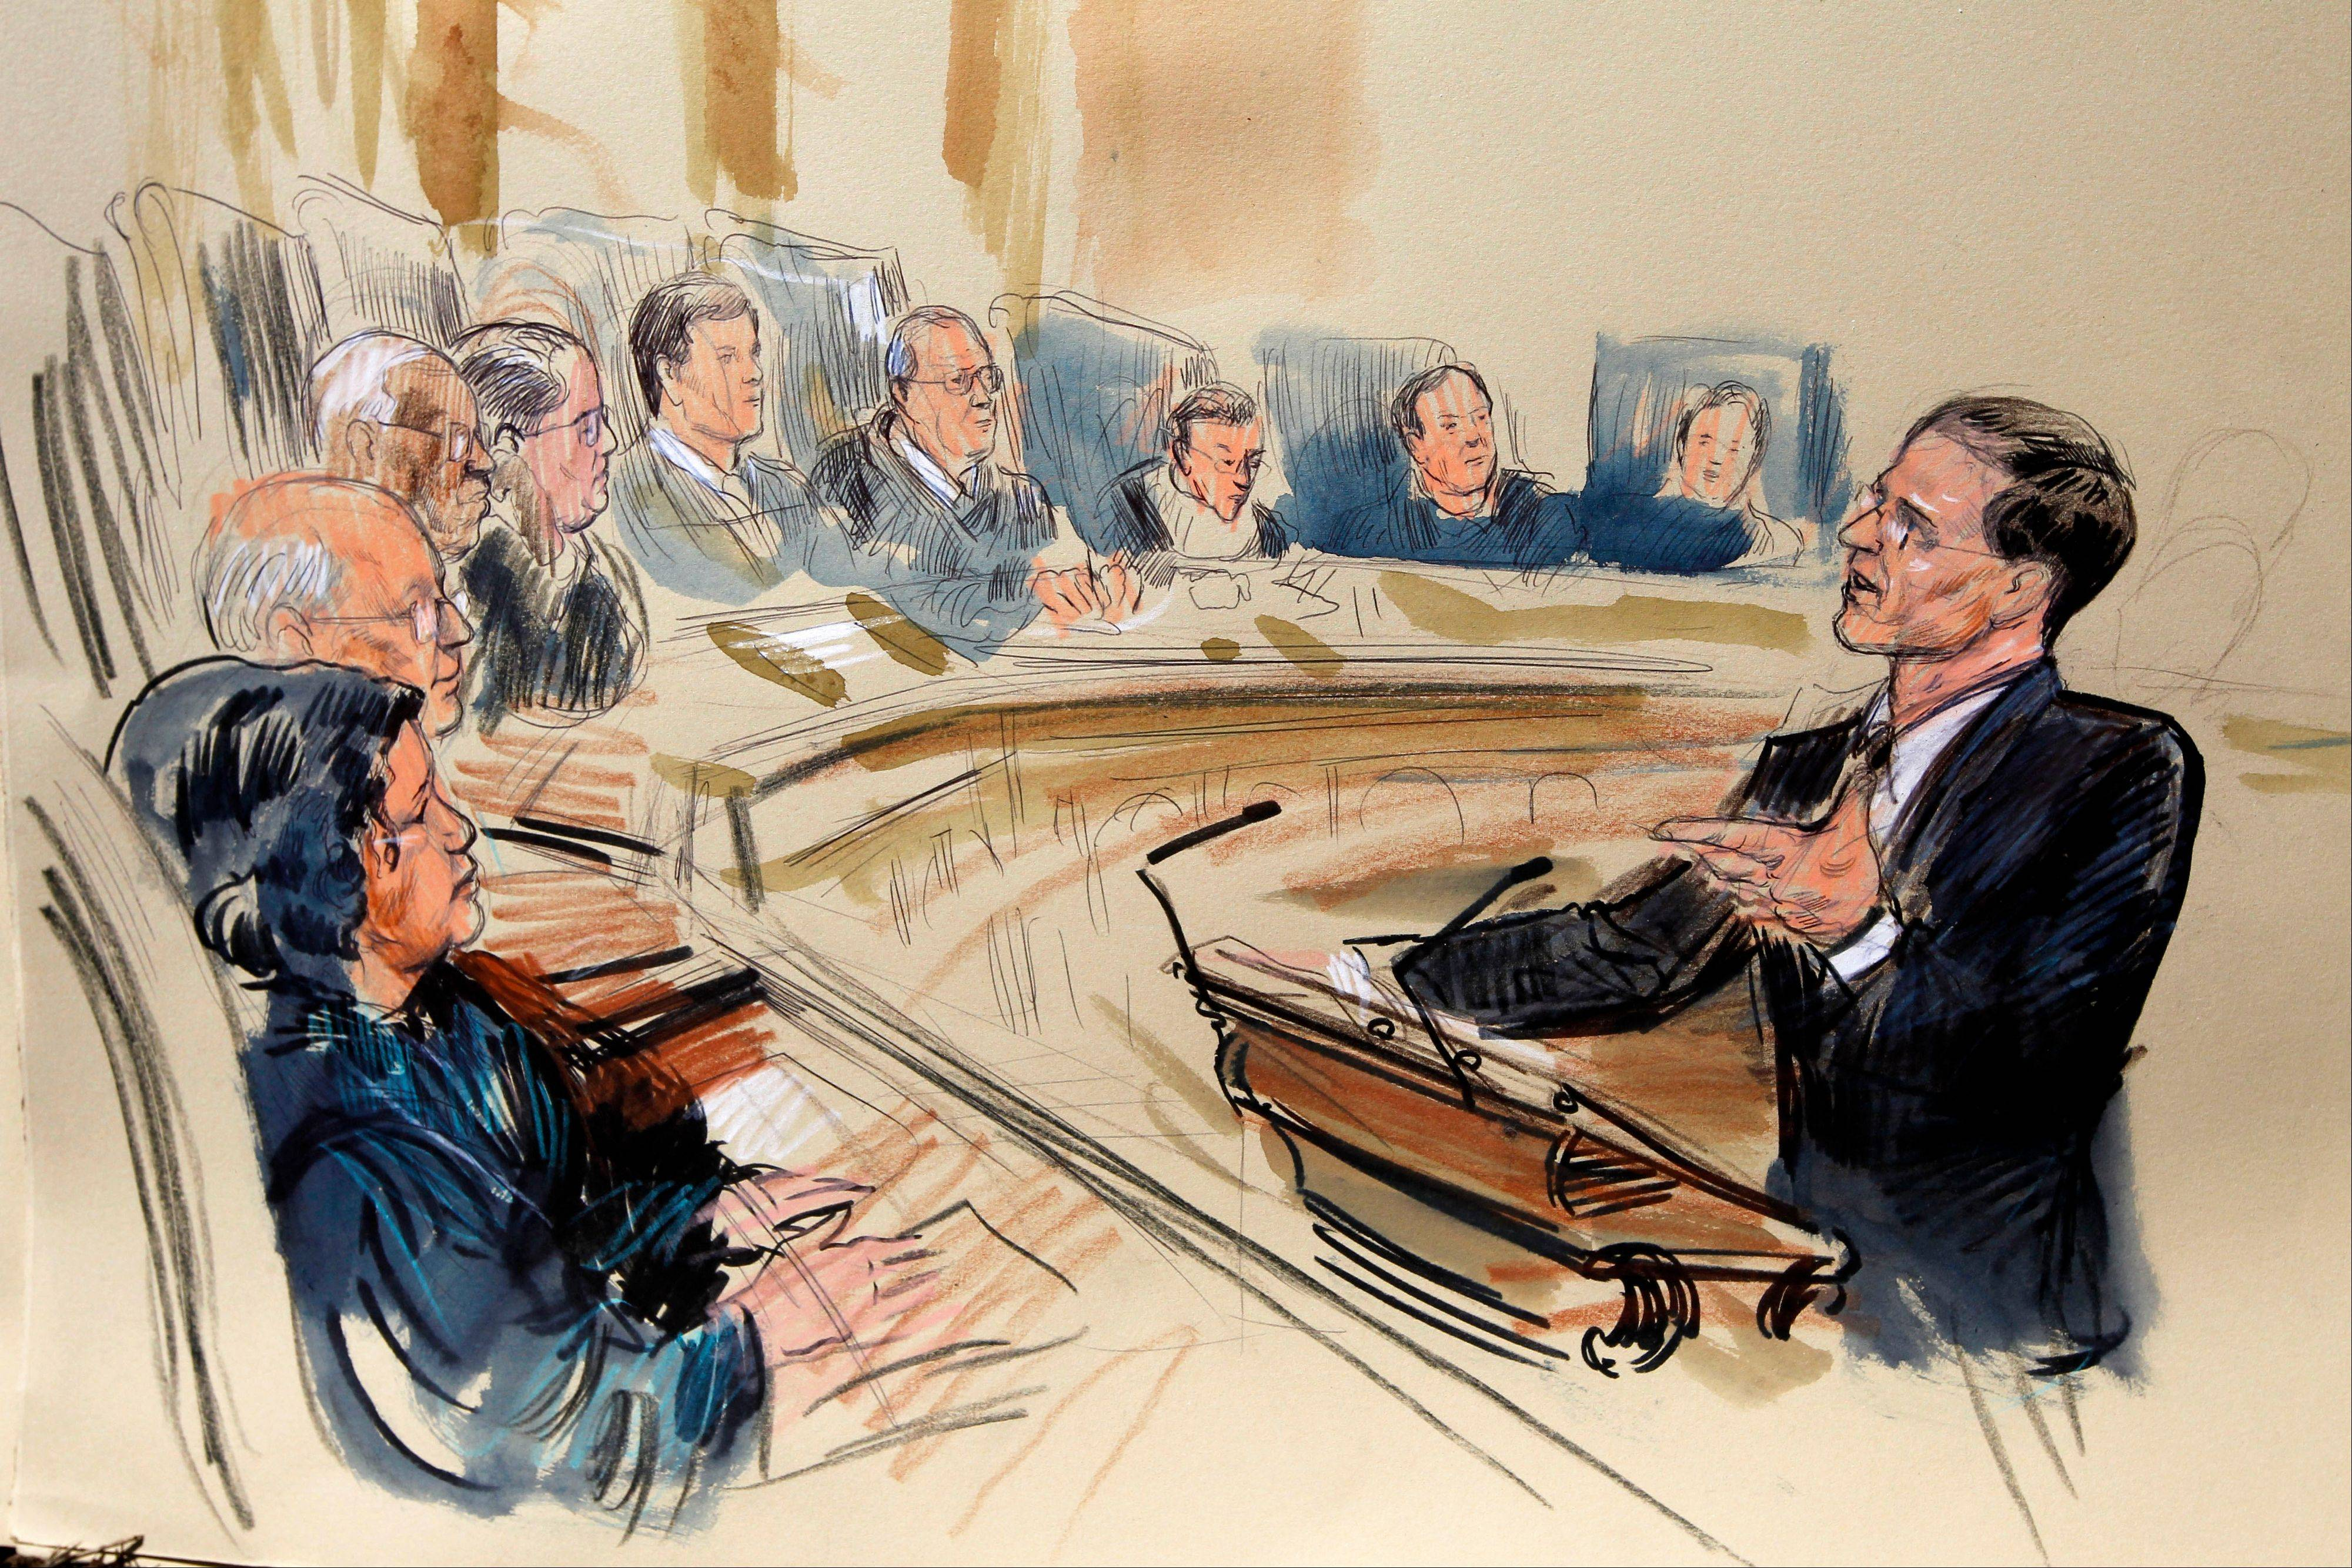 This artist rendering shows attorney Gregory G. Katsas speaking in front of the Supreme Court Justice in Washington on Monday as the court began three days of arguments on the health care law signed by President Barack Obama in Washington. Justices seated, from left are, Sonia Sotomayor, Stephen Breyer, Clarence Thomas, Antonin Scalia, Chief Justice John Roberts and Anthony Kennedy, Ruth Bader Ginsburg, Samuel Alito and Elena Kagan.